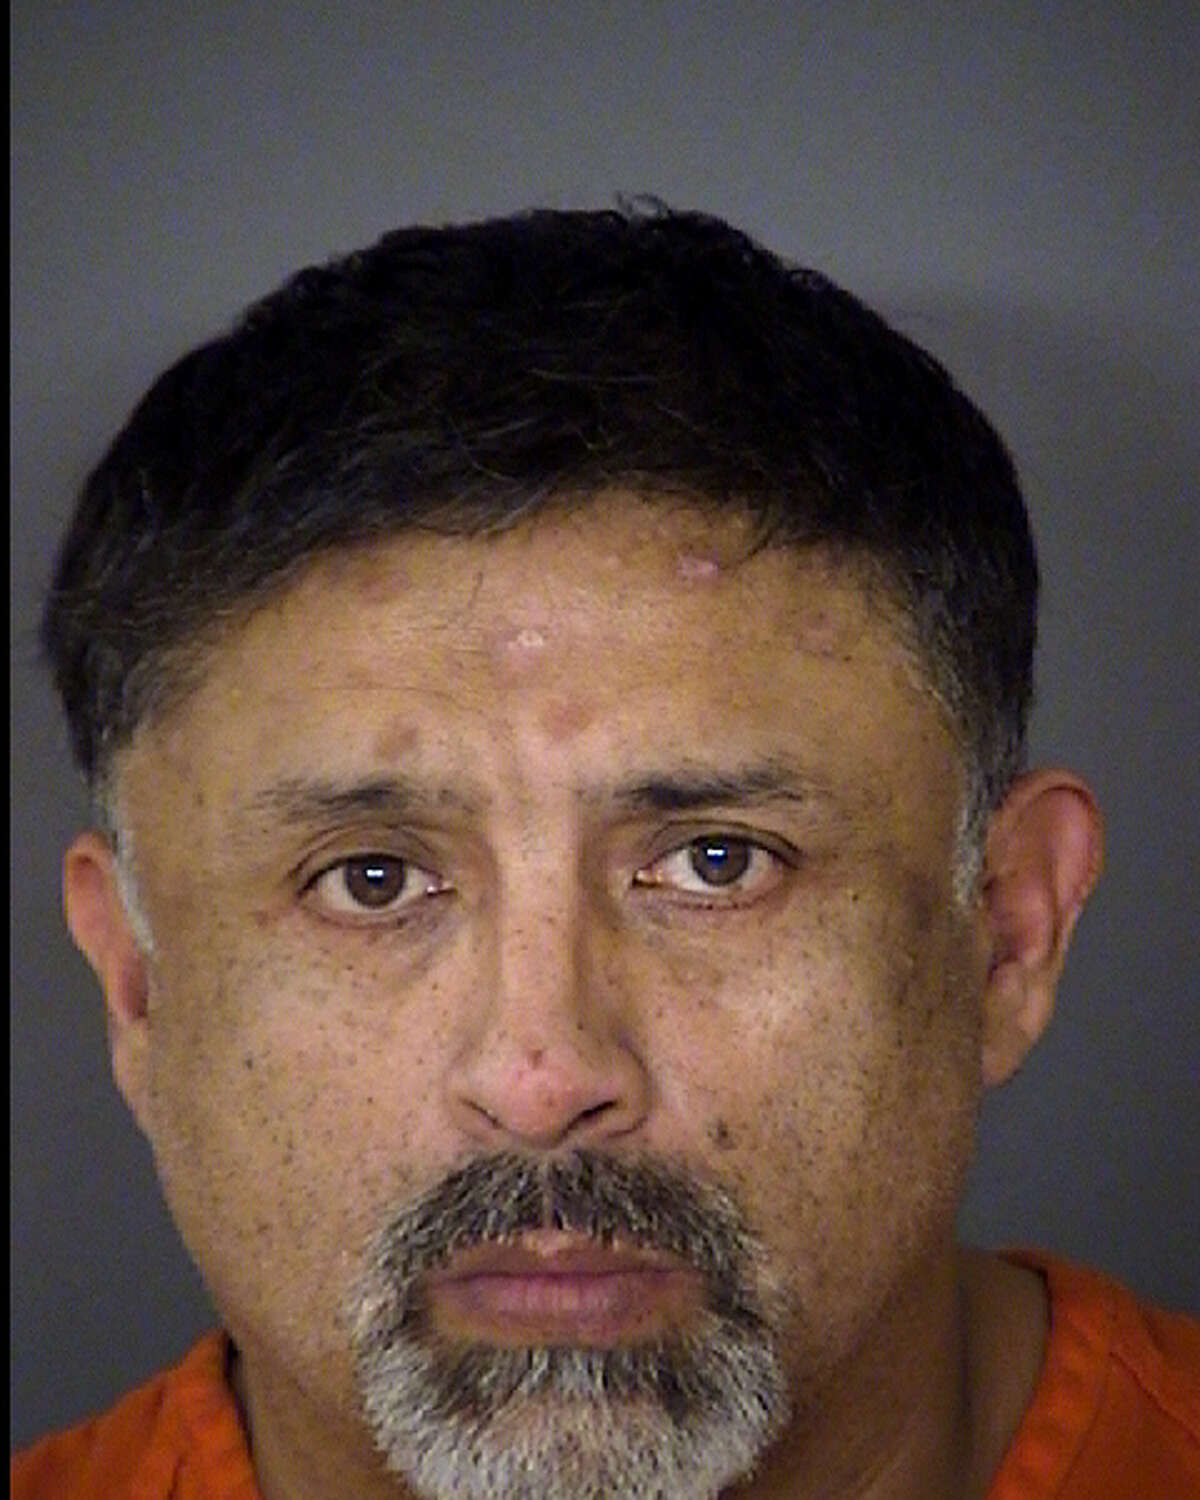 Joel Soto, seen in a Nov. 21, 2013 Bexar County Jail booking mug, was charged with arson of a vehicle, a second-degree felony punishable by up to 20 years in prison. Soto's 2-year-old grandson was found in the vehicle by first responders after the fire.